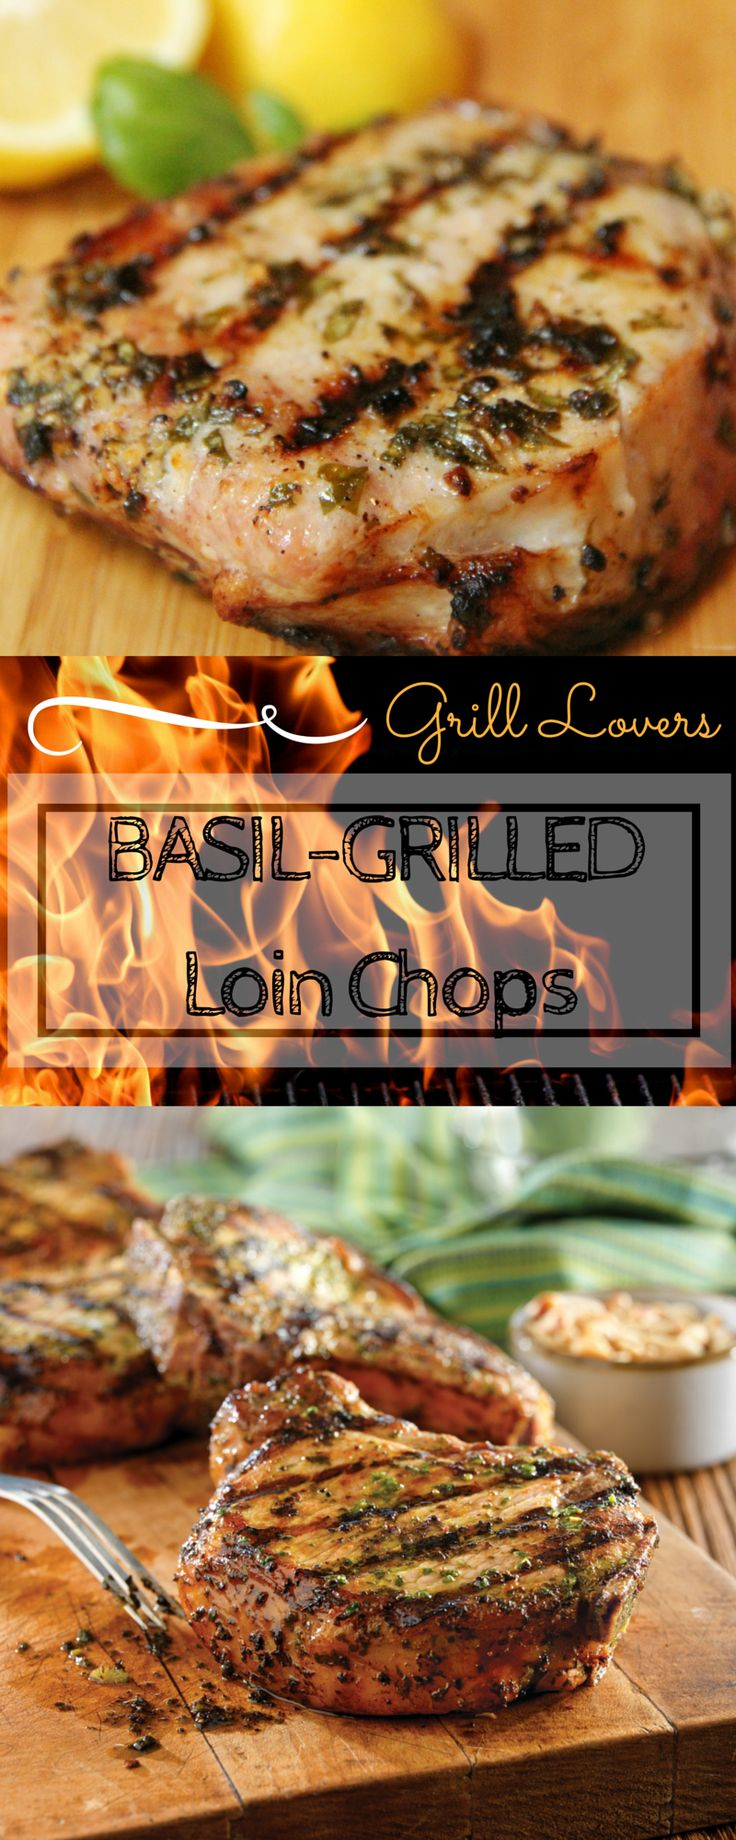 Grill Lovers' Amazing Basil-Grilled Loin Chops Recipe   #recipes #foodporn #foodie